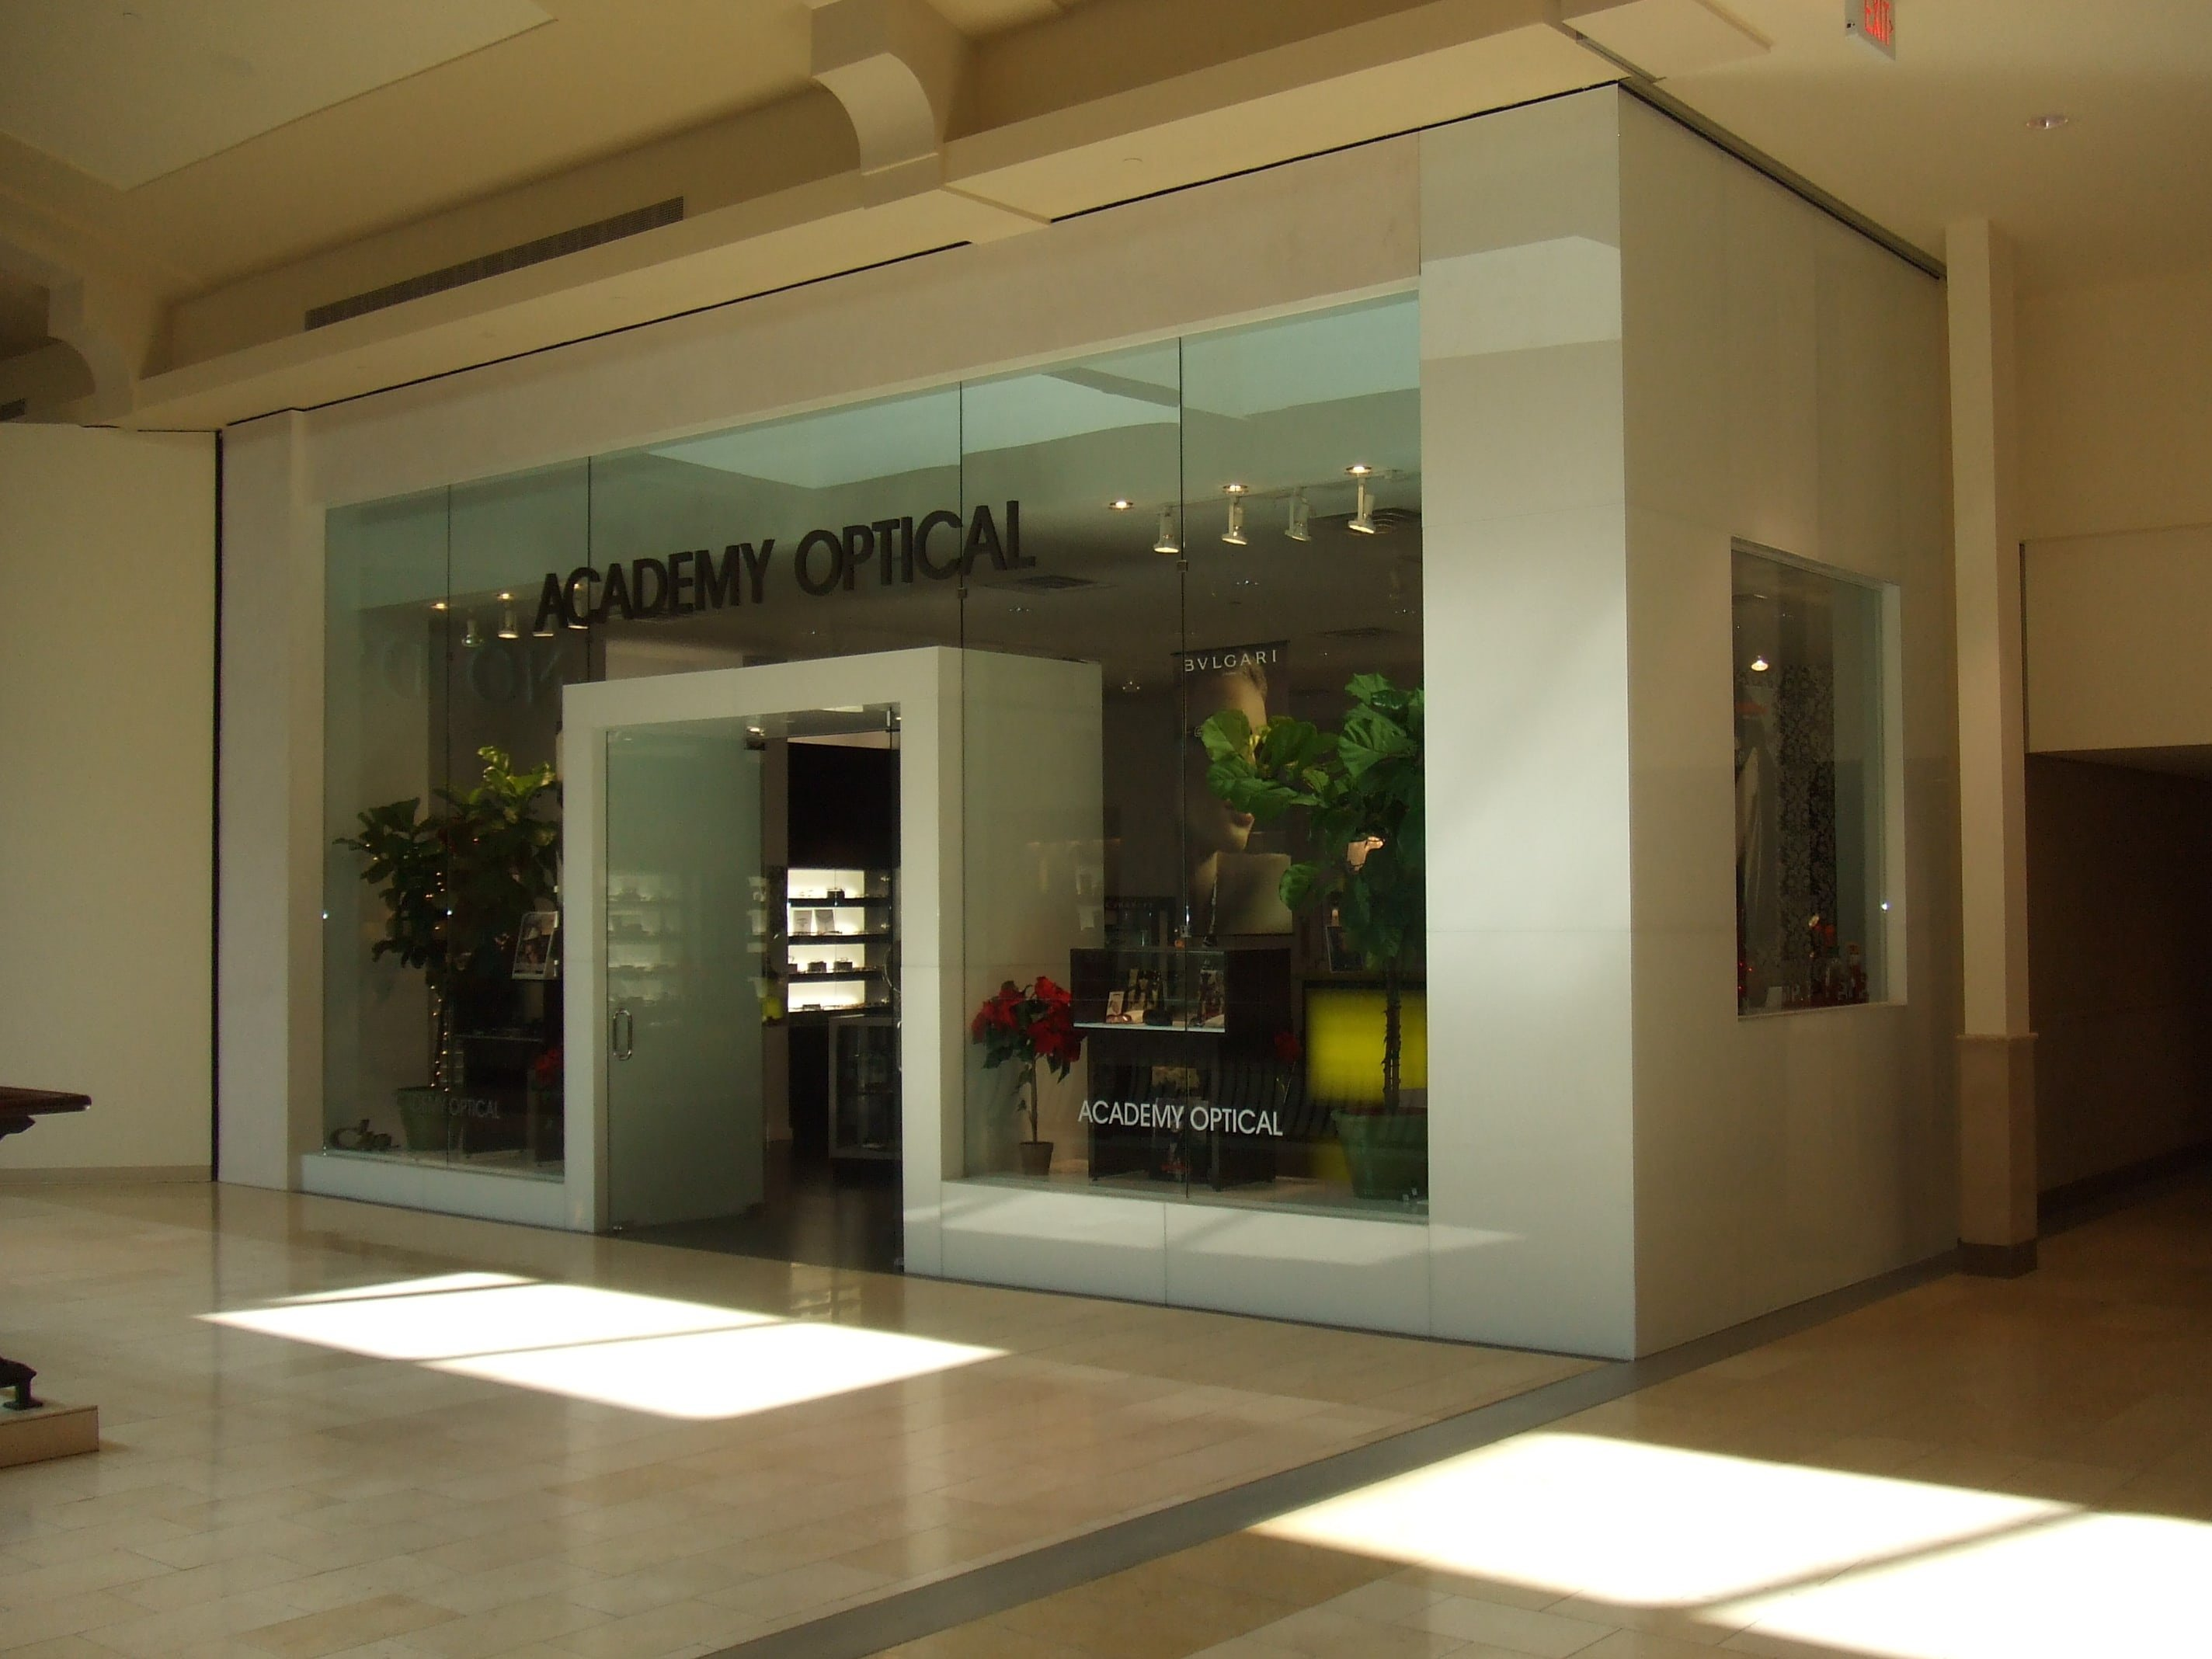 Academy Optical Storefront